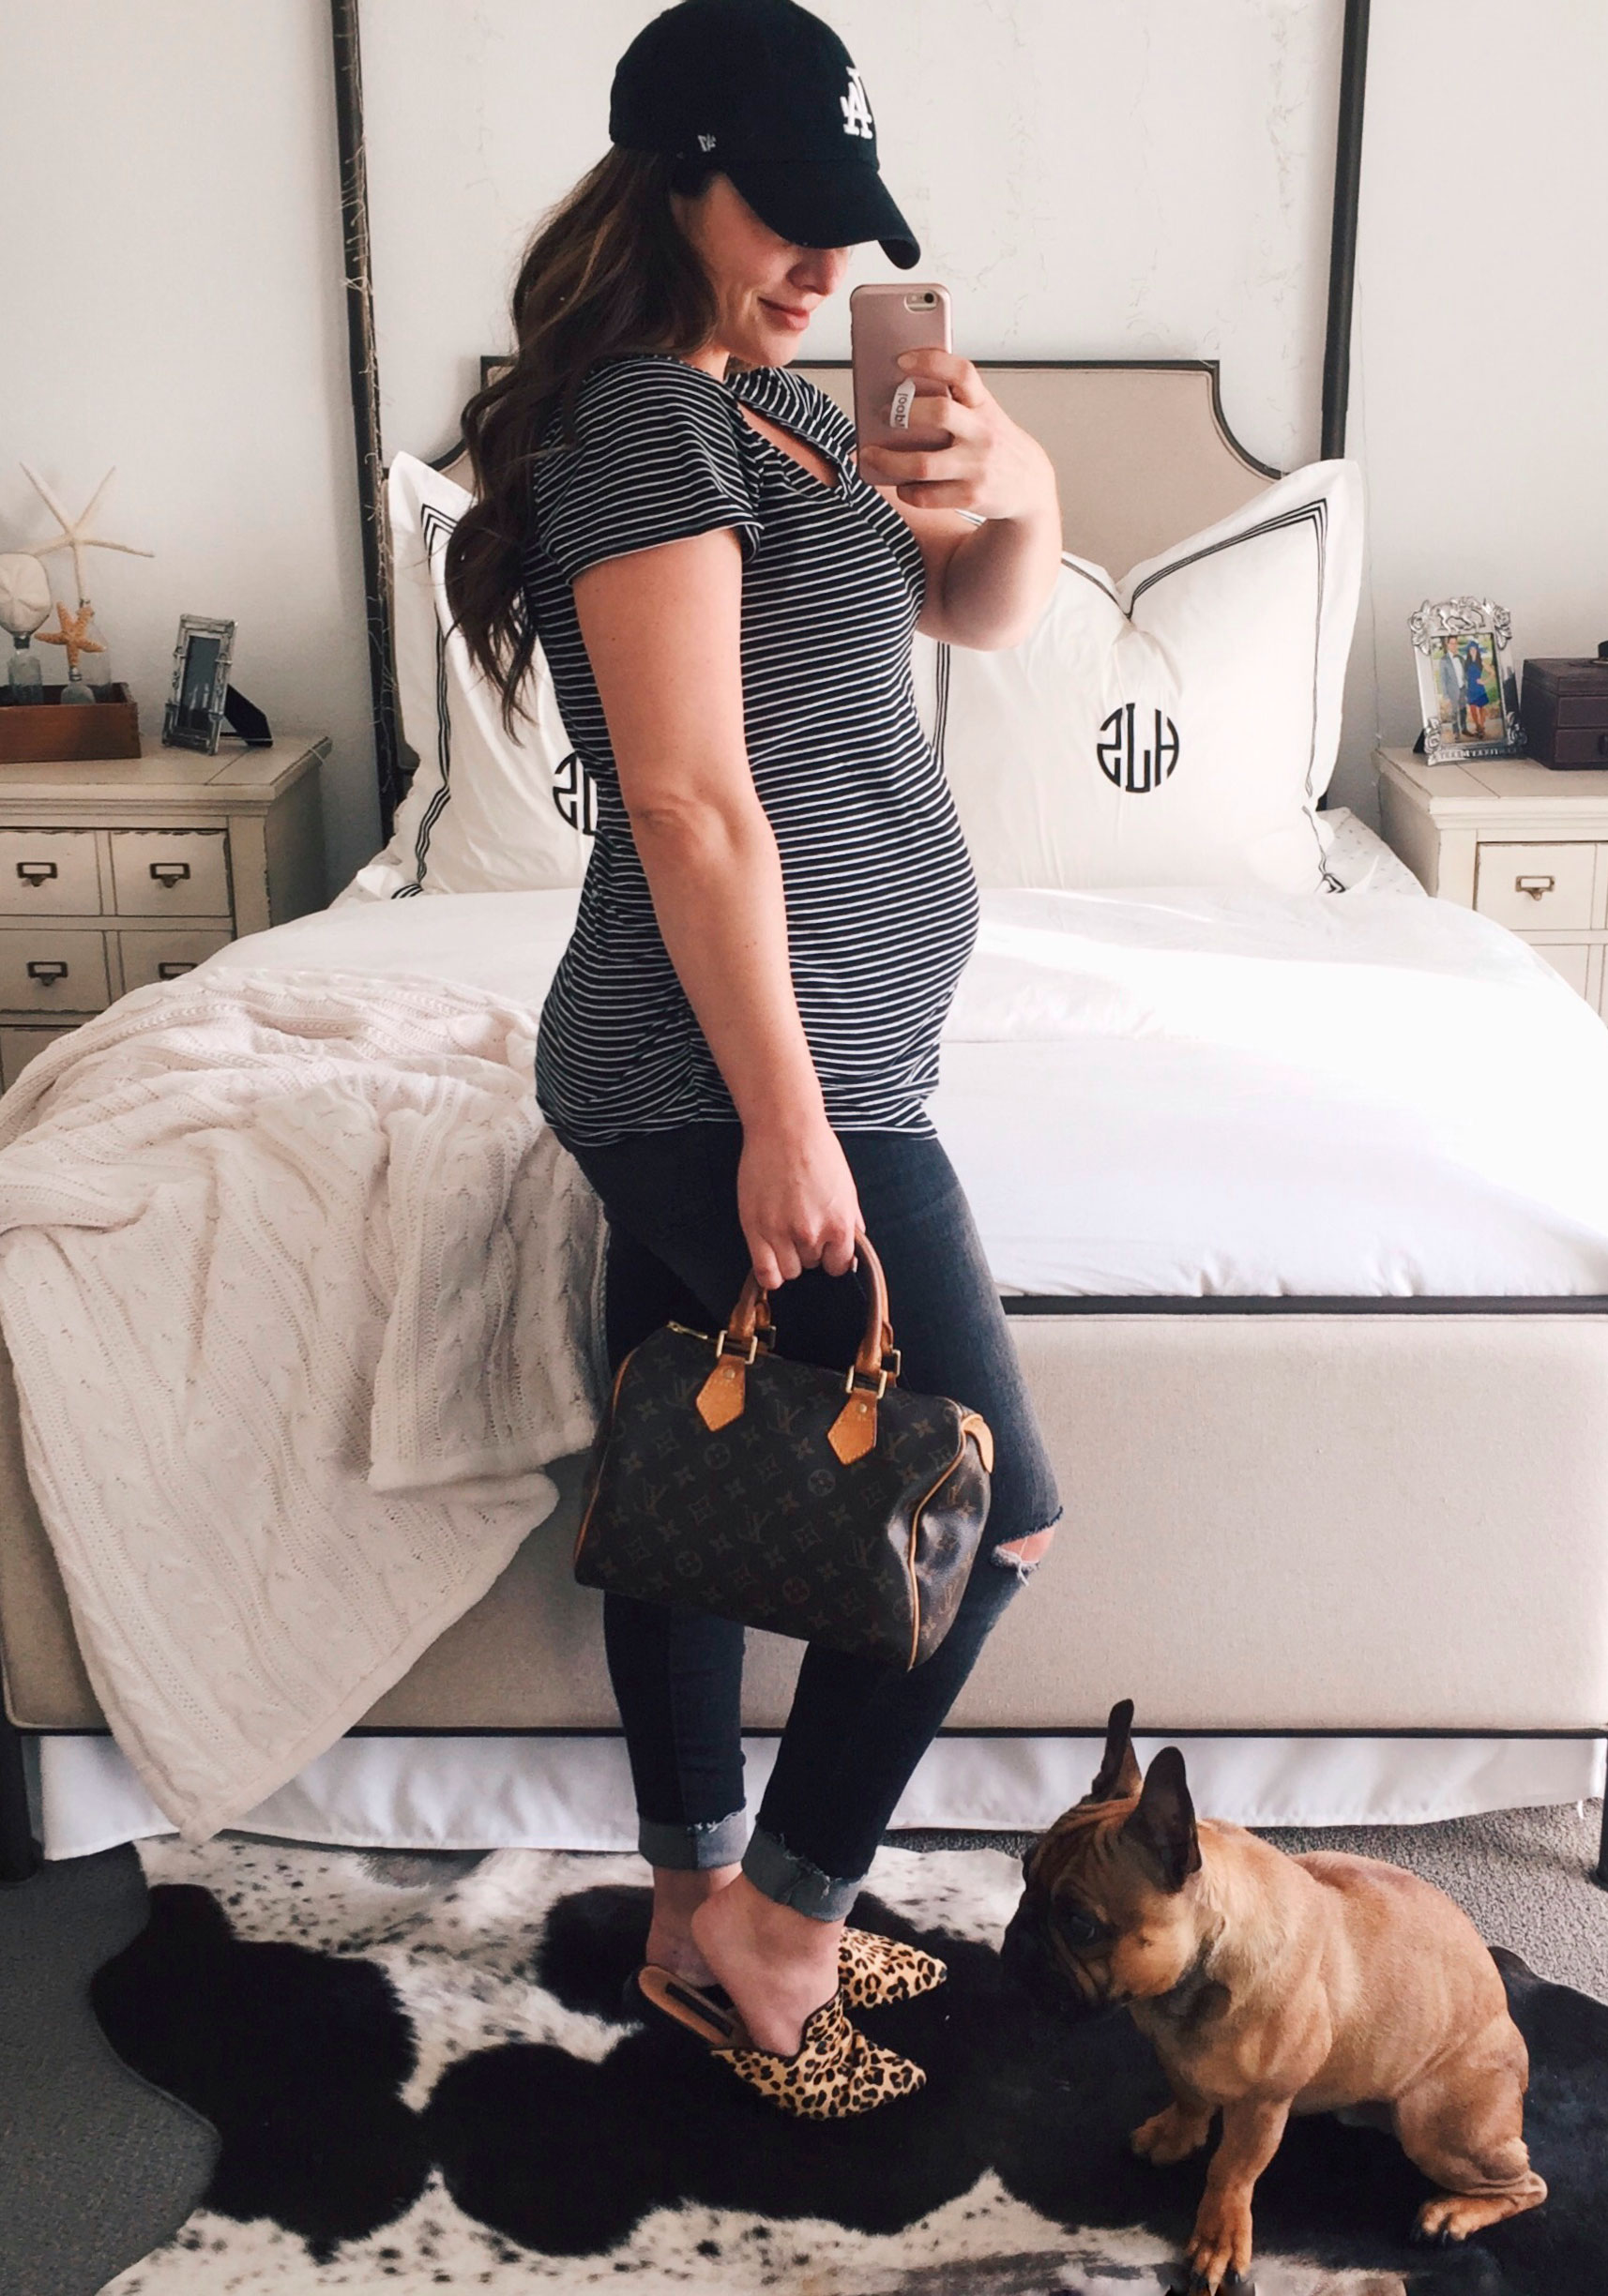 Second trimester maternity outfit.  Distressed gray maternity jeans, black and white striped maternity tee, leopard slides, LA hat, and Louis Vuitton speedy 25,